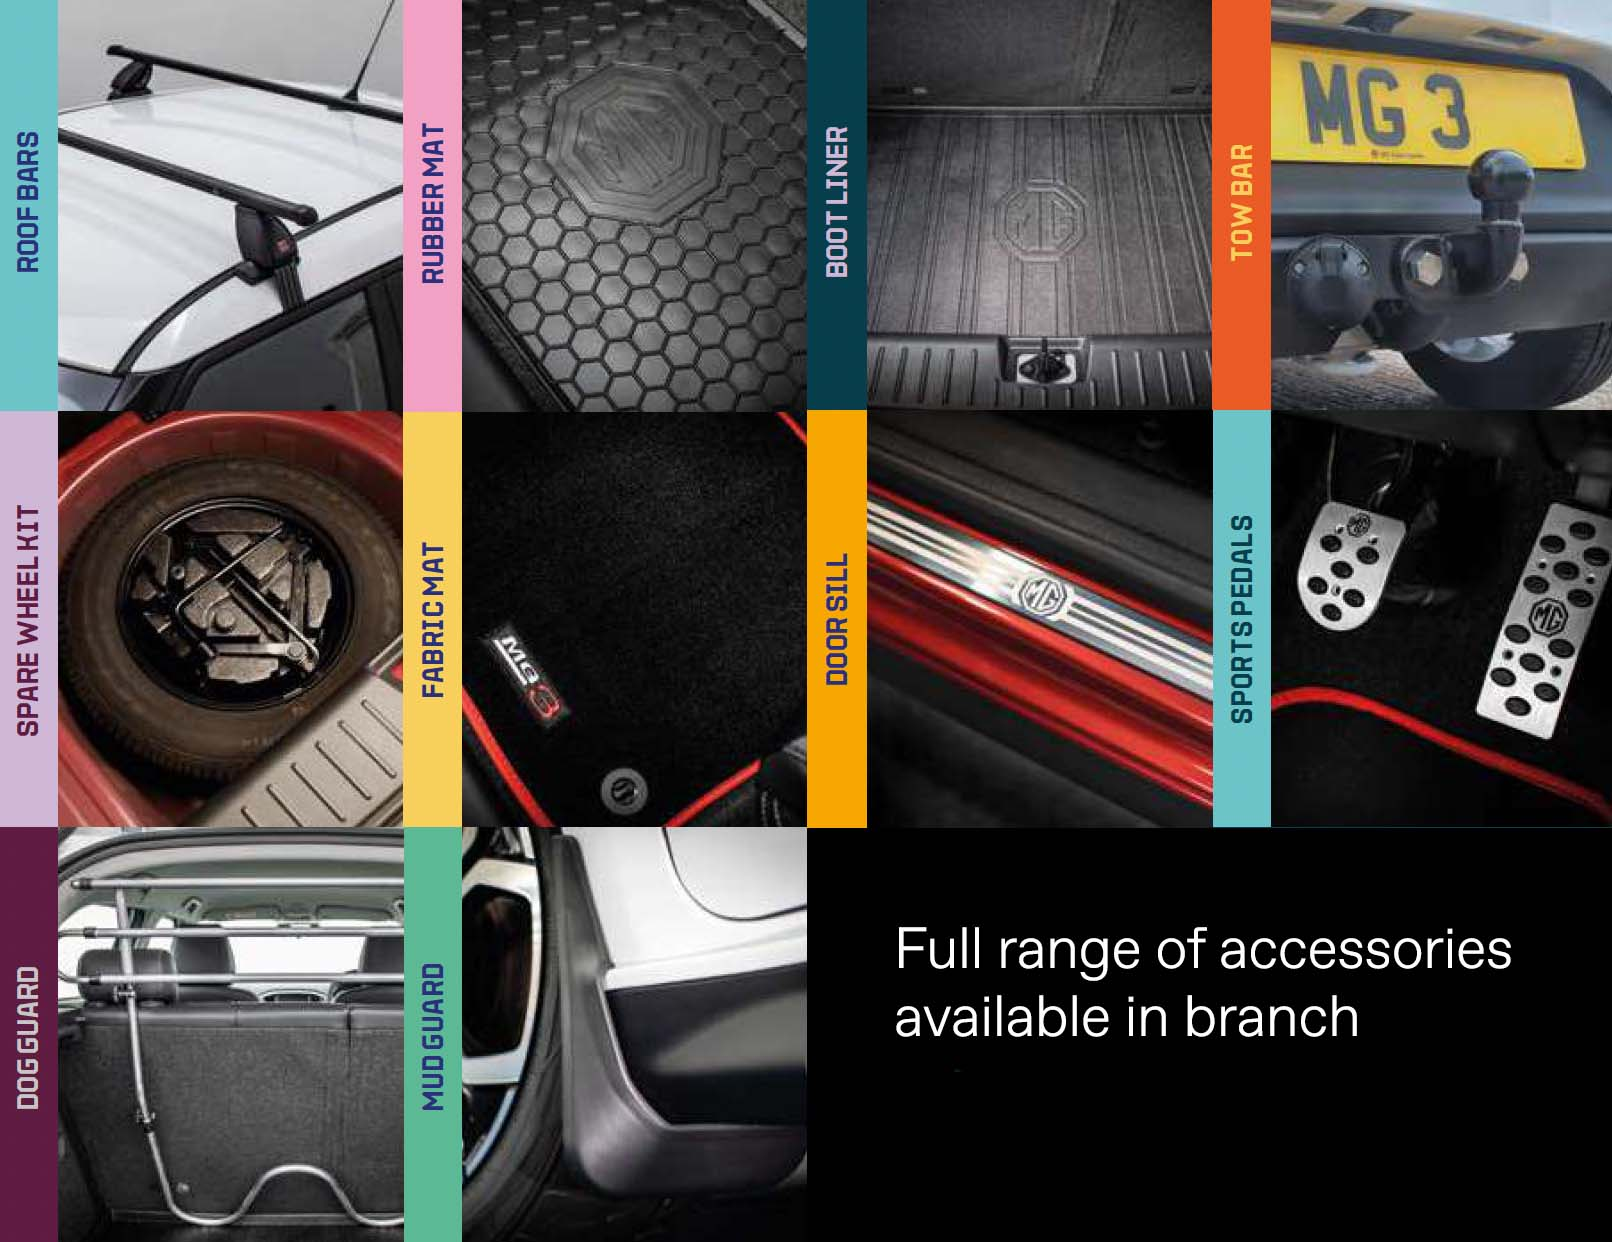 MG3_Accessories